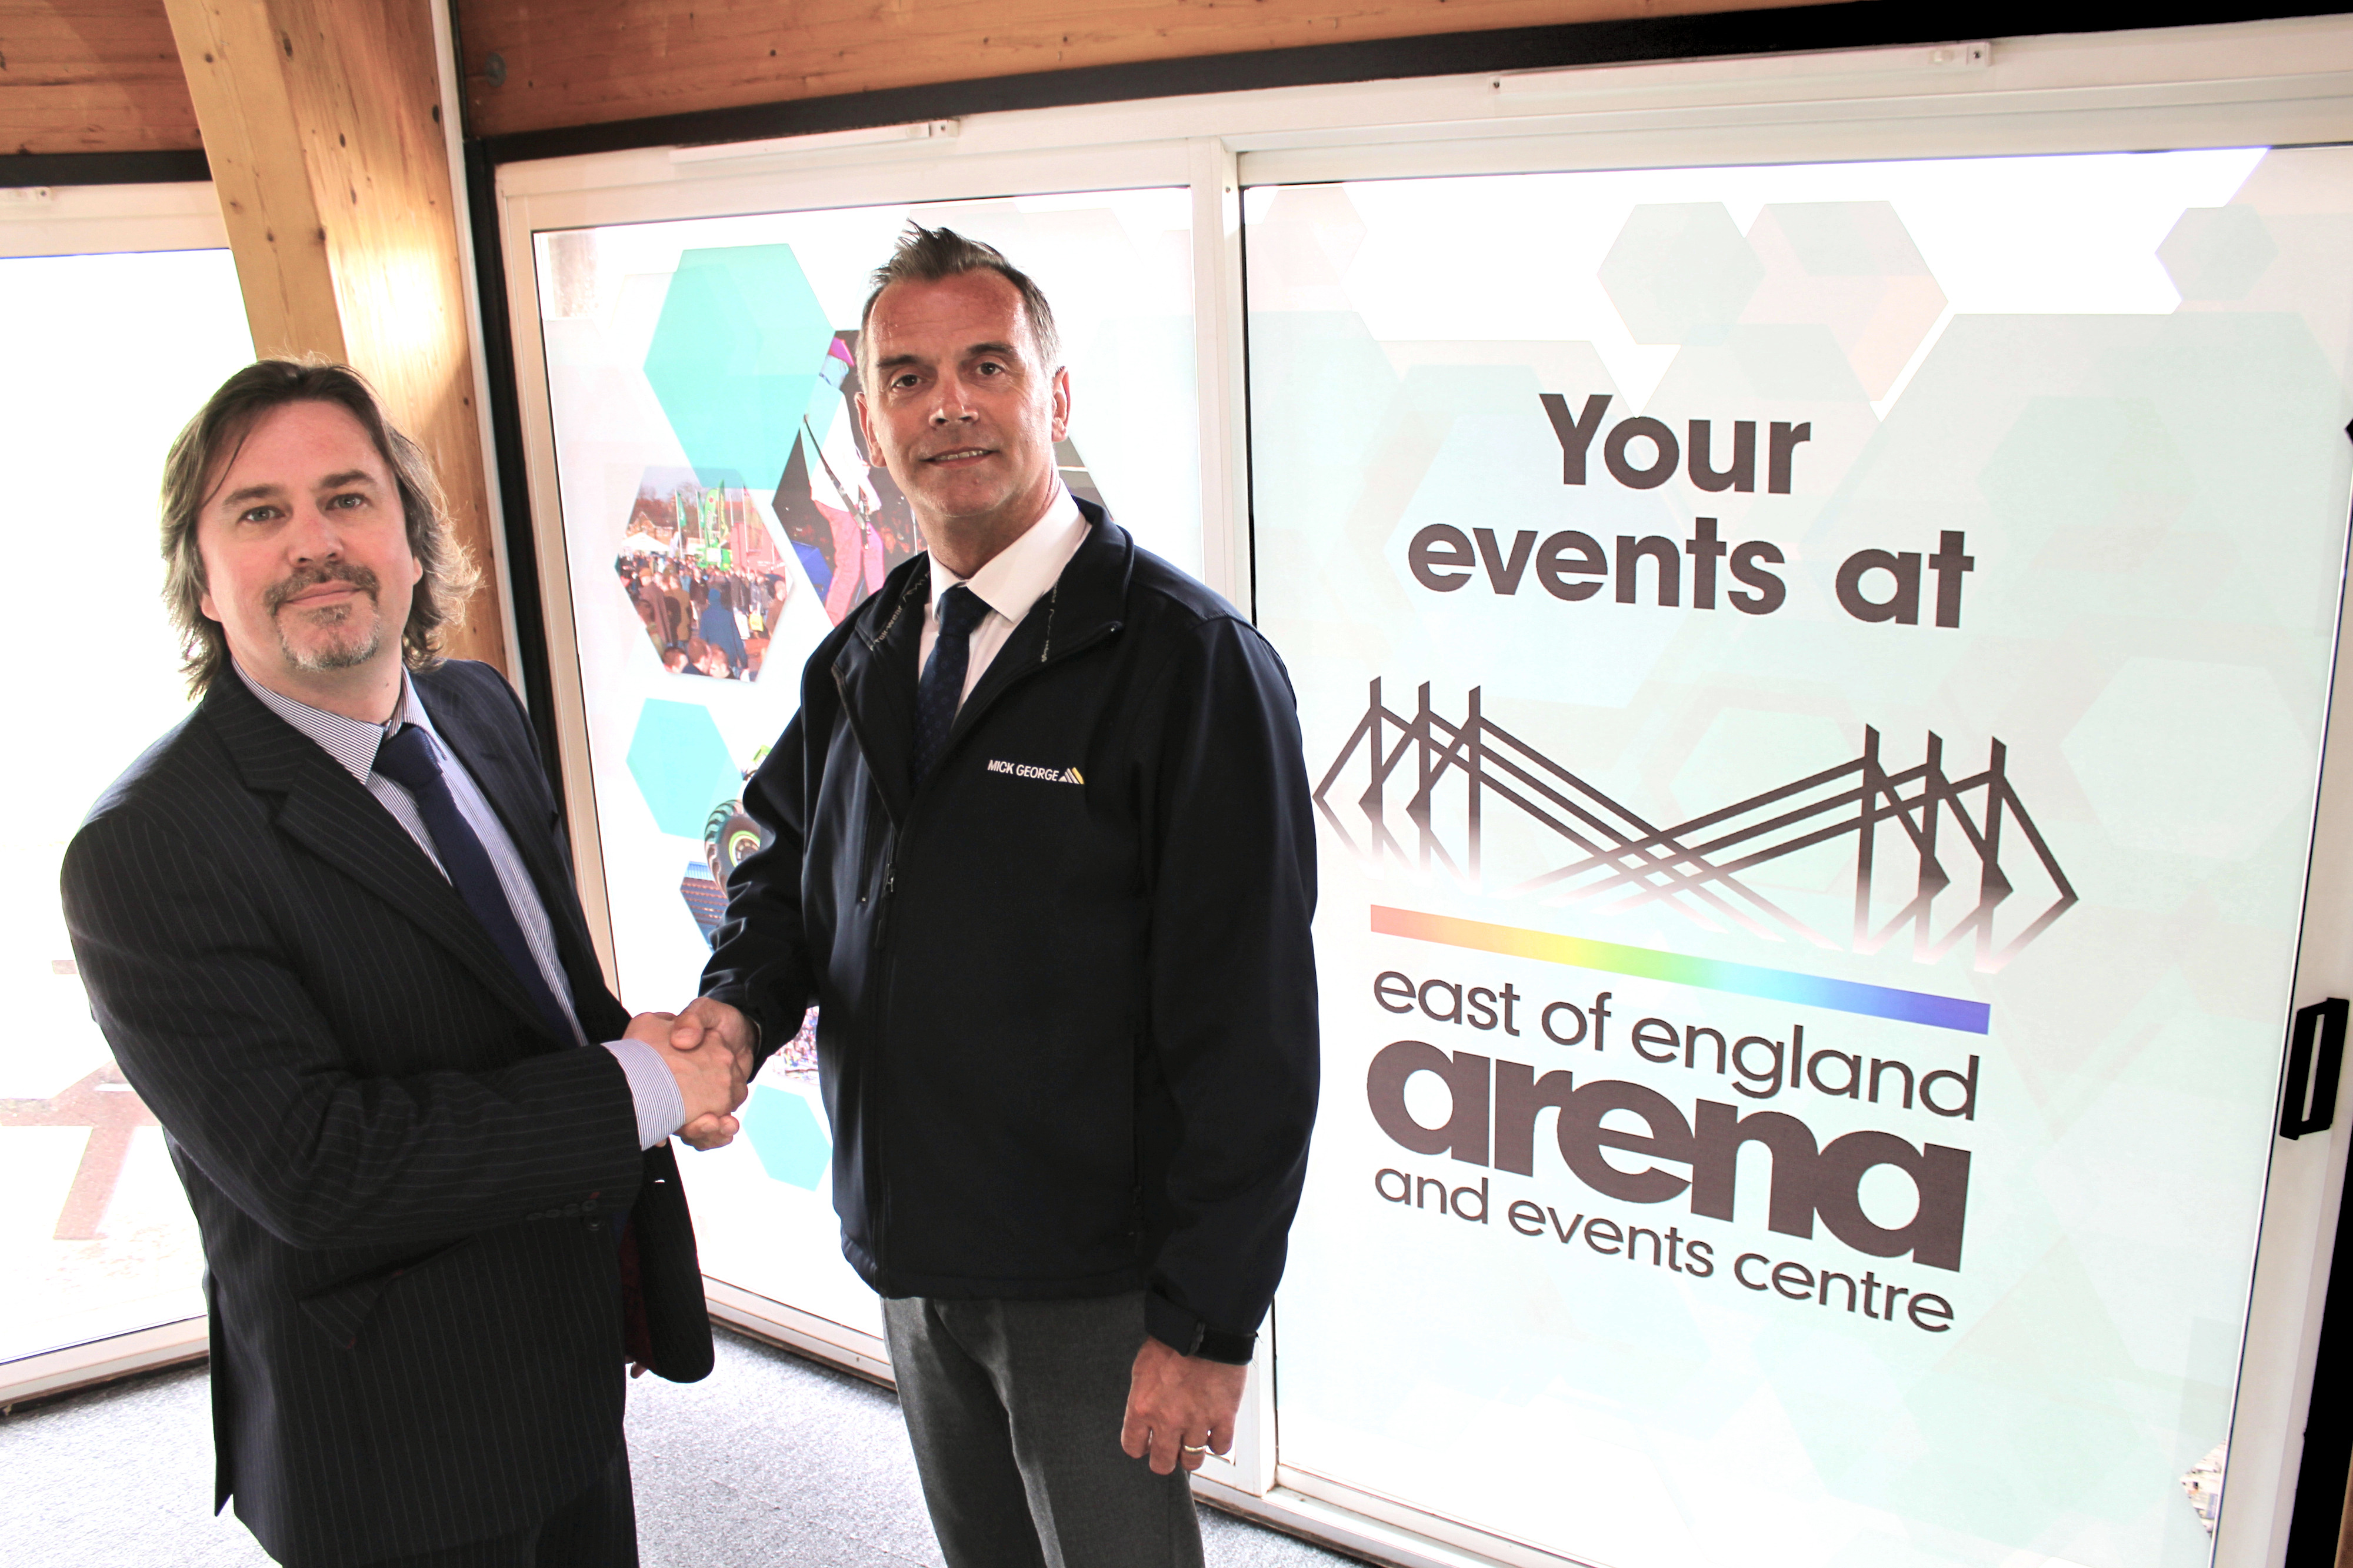 East of England Arena agrees fifth year of partnership with Mick George Ltd.